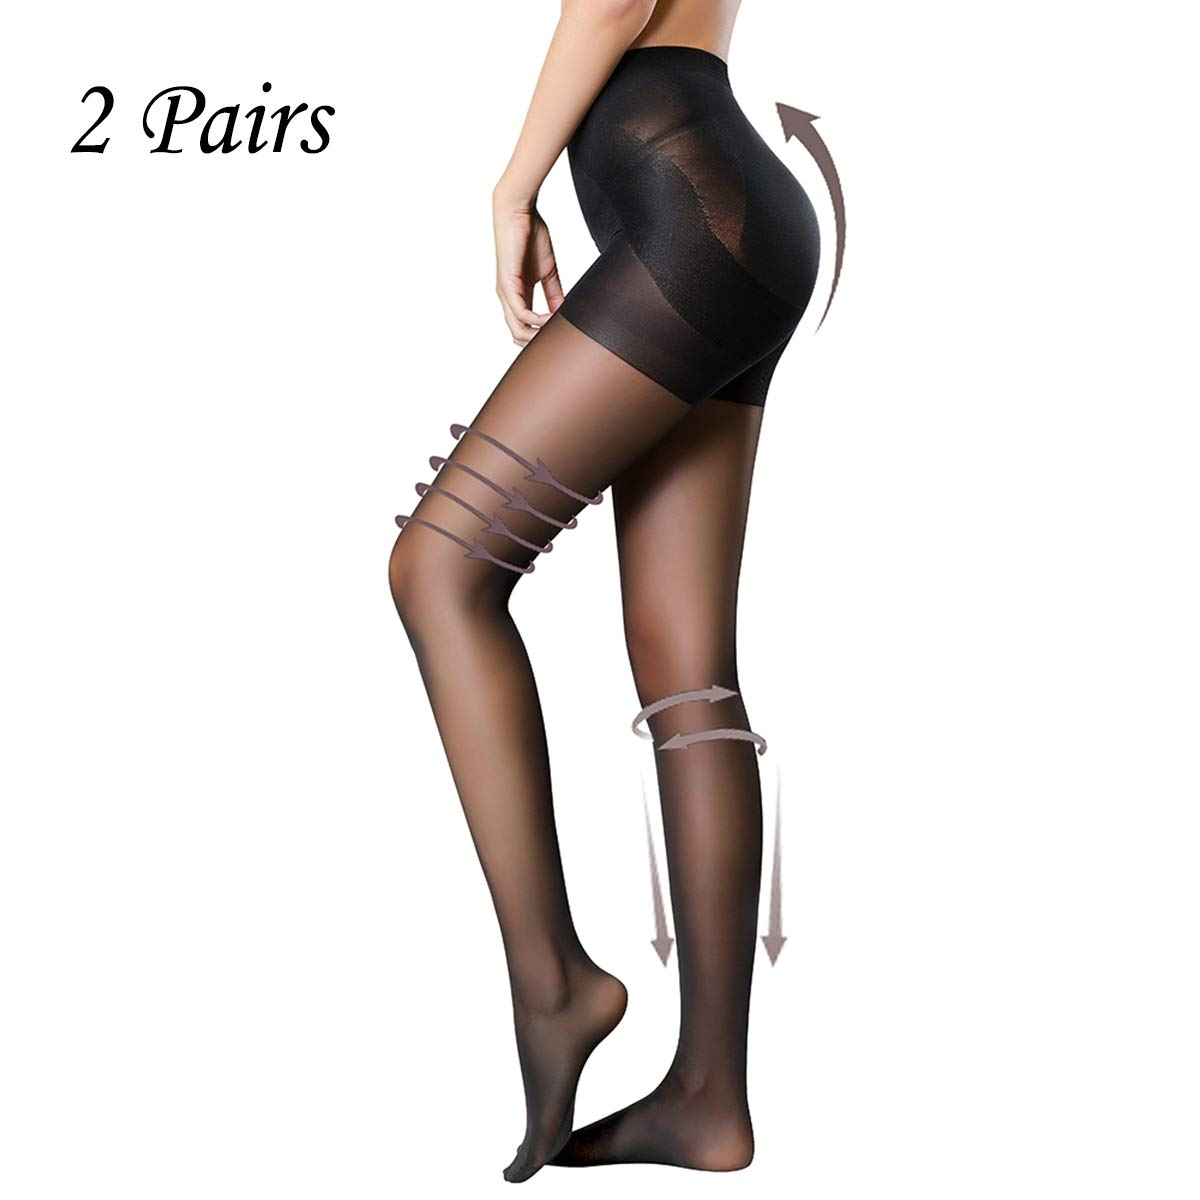 HONENNA 2 Pair Compression Shaping Pantyhose Control Top Semi Opaque Tights Push Up HN14018-Black-S